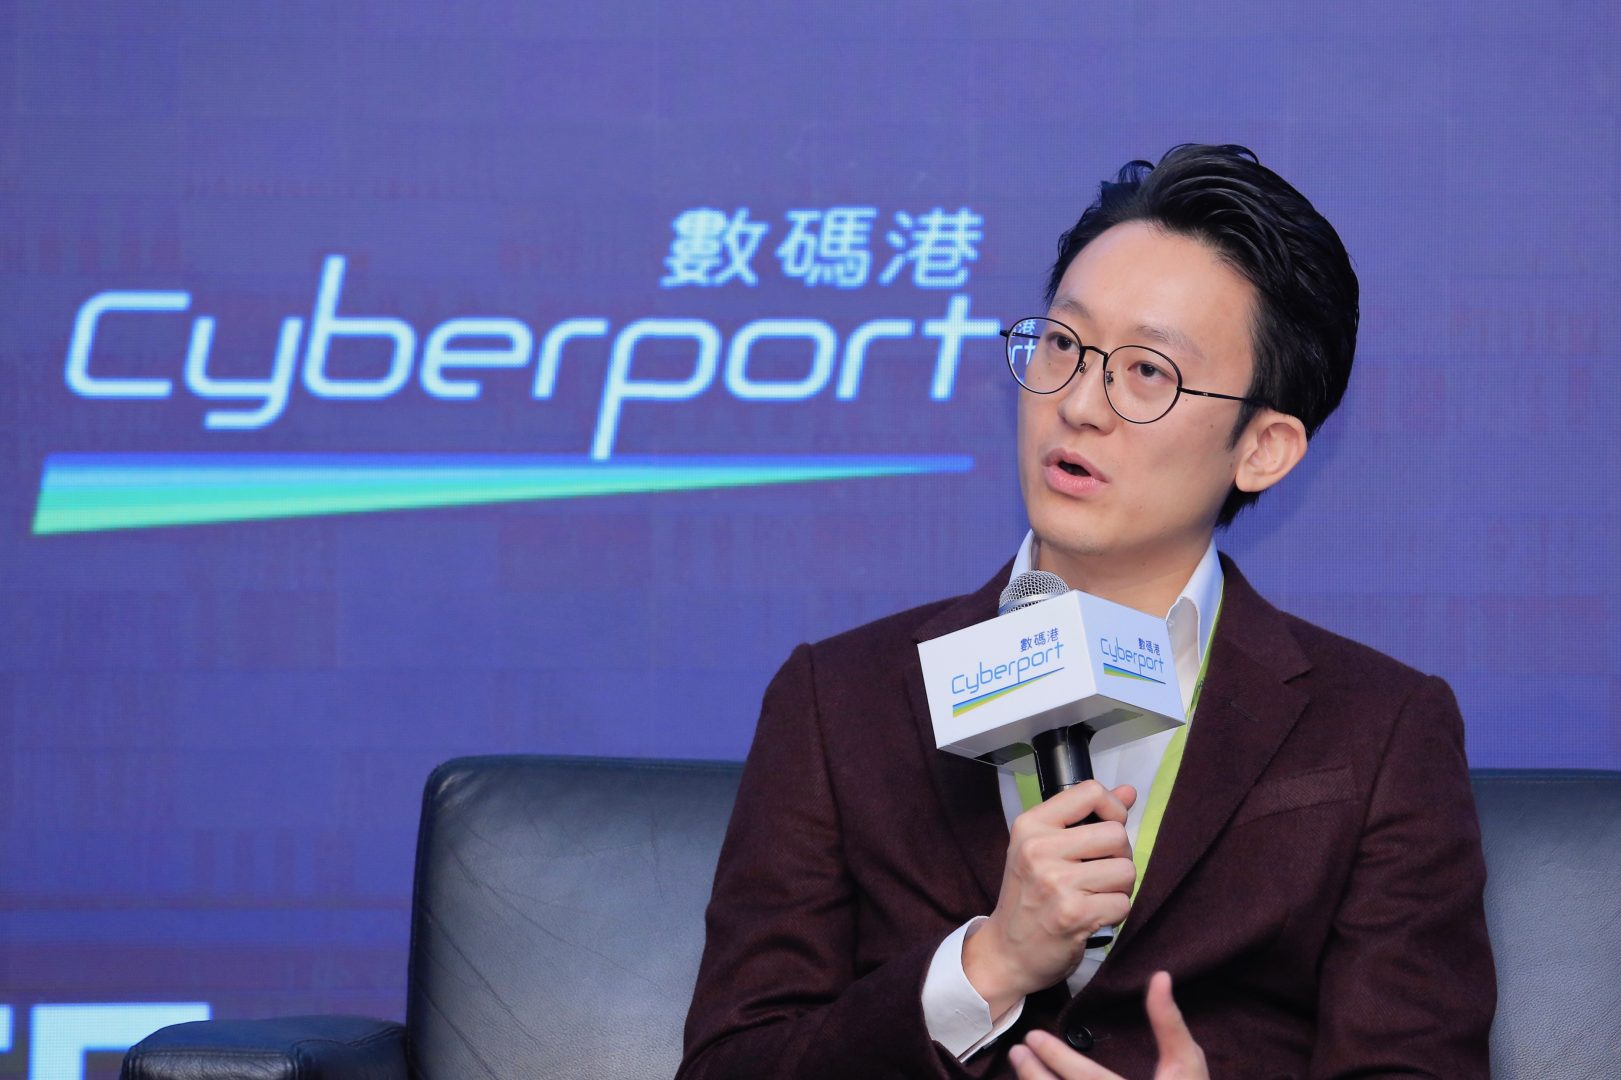 00575 Hong Kong's tech startup scene is catching up with mainland China Hong Kong Cyberport